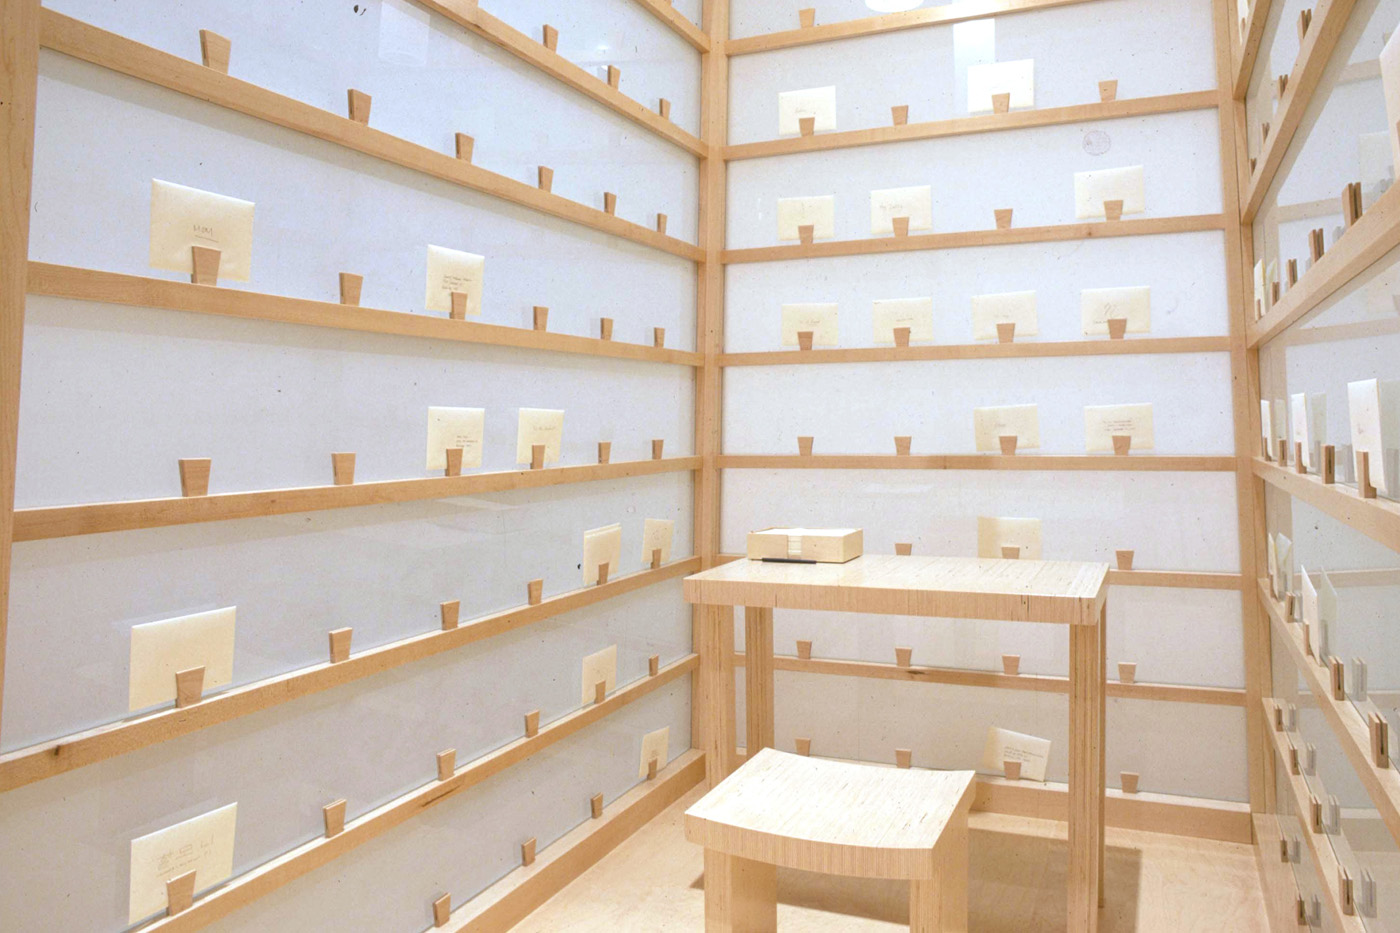 Lee Mingwei   The Letter-Writing Project (Way Stations) , 1999 wood, glass, paper     Installation view at MOCA Cleveland